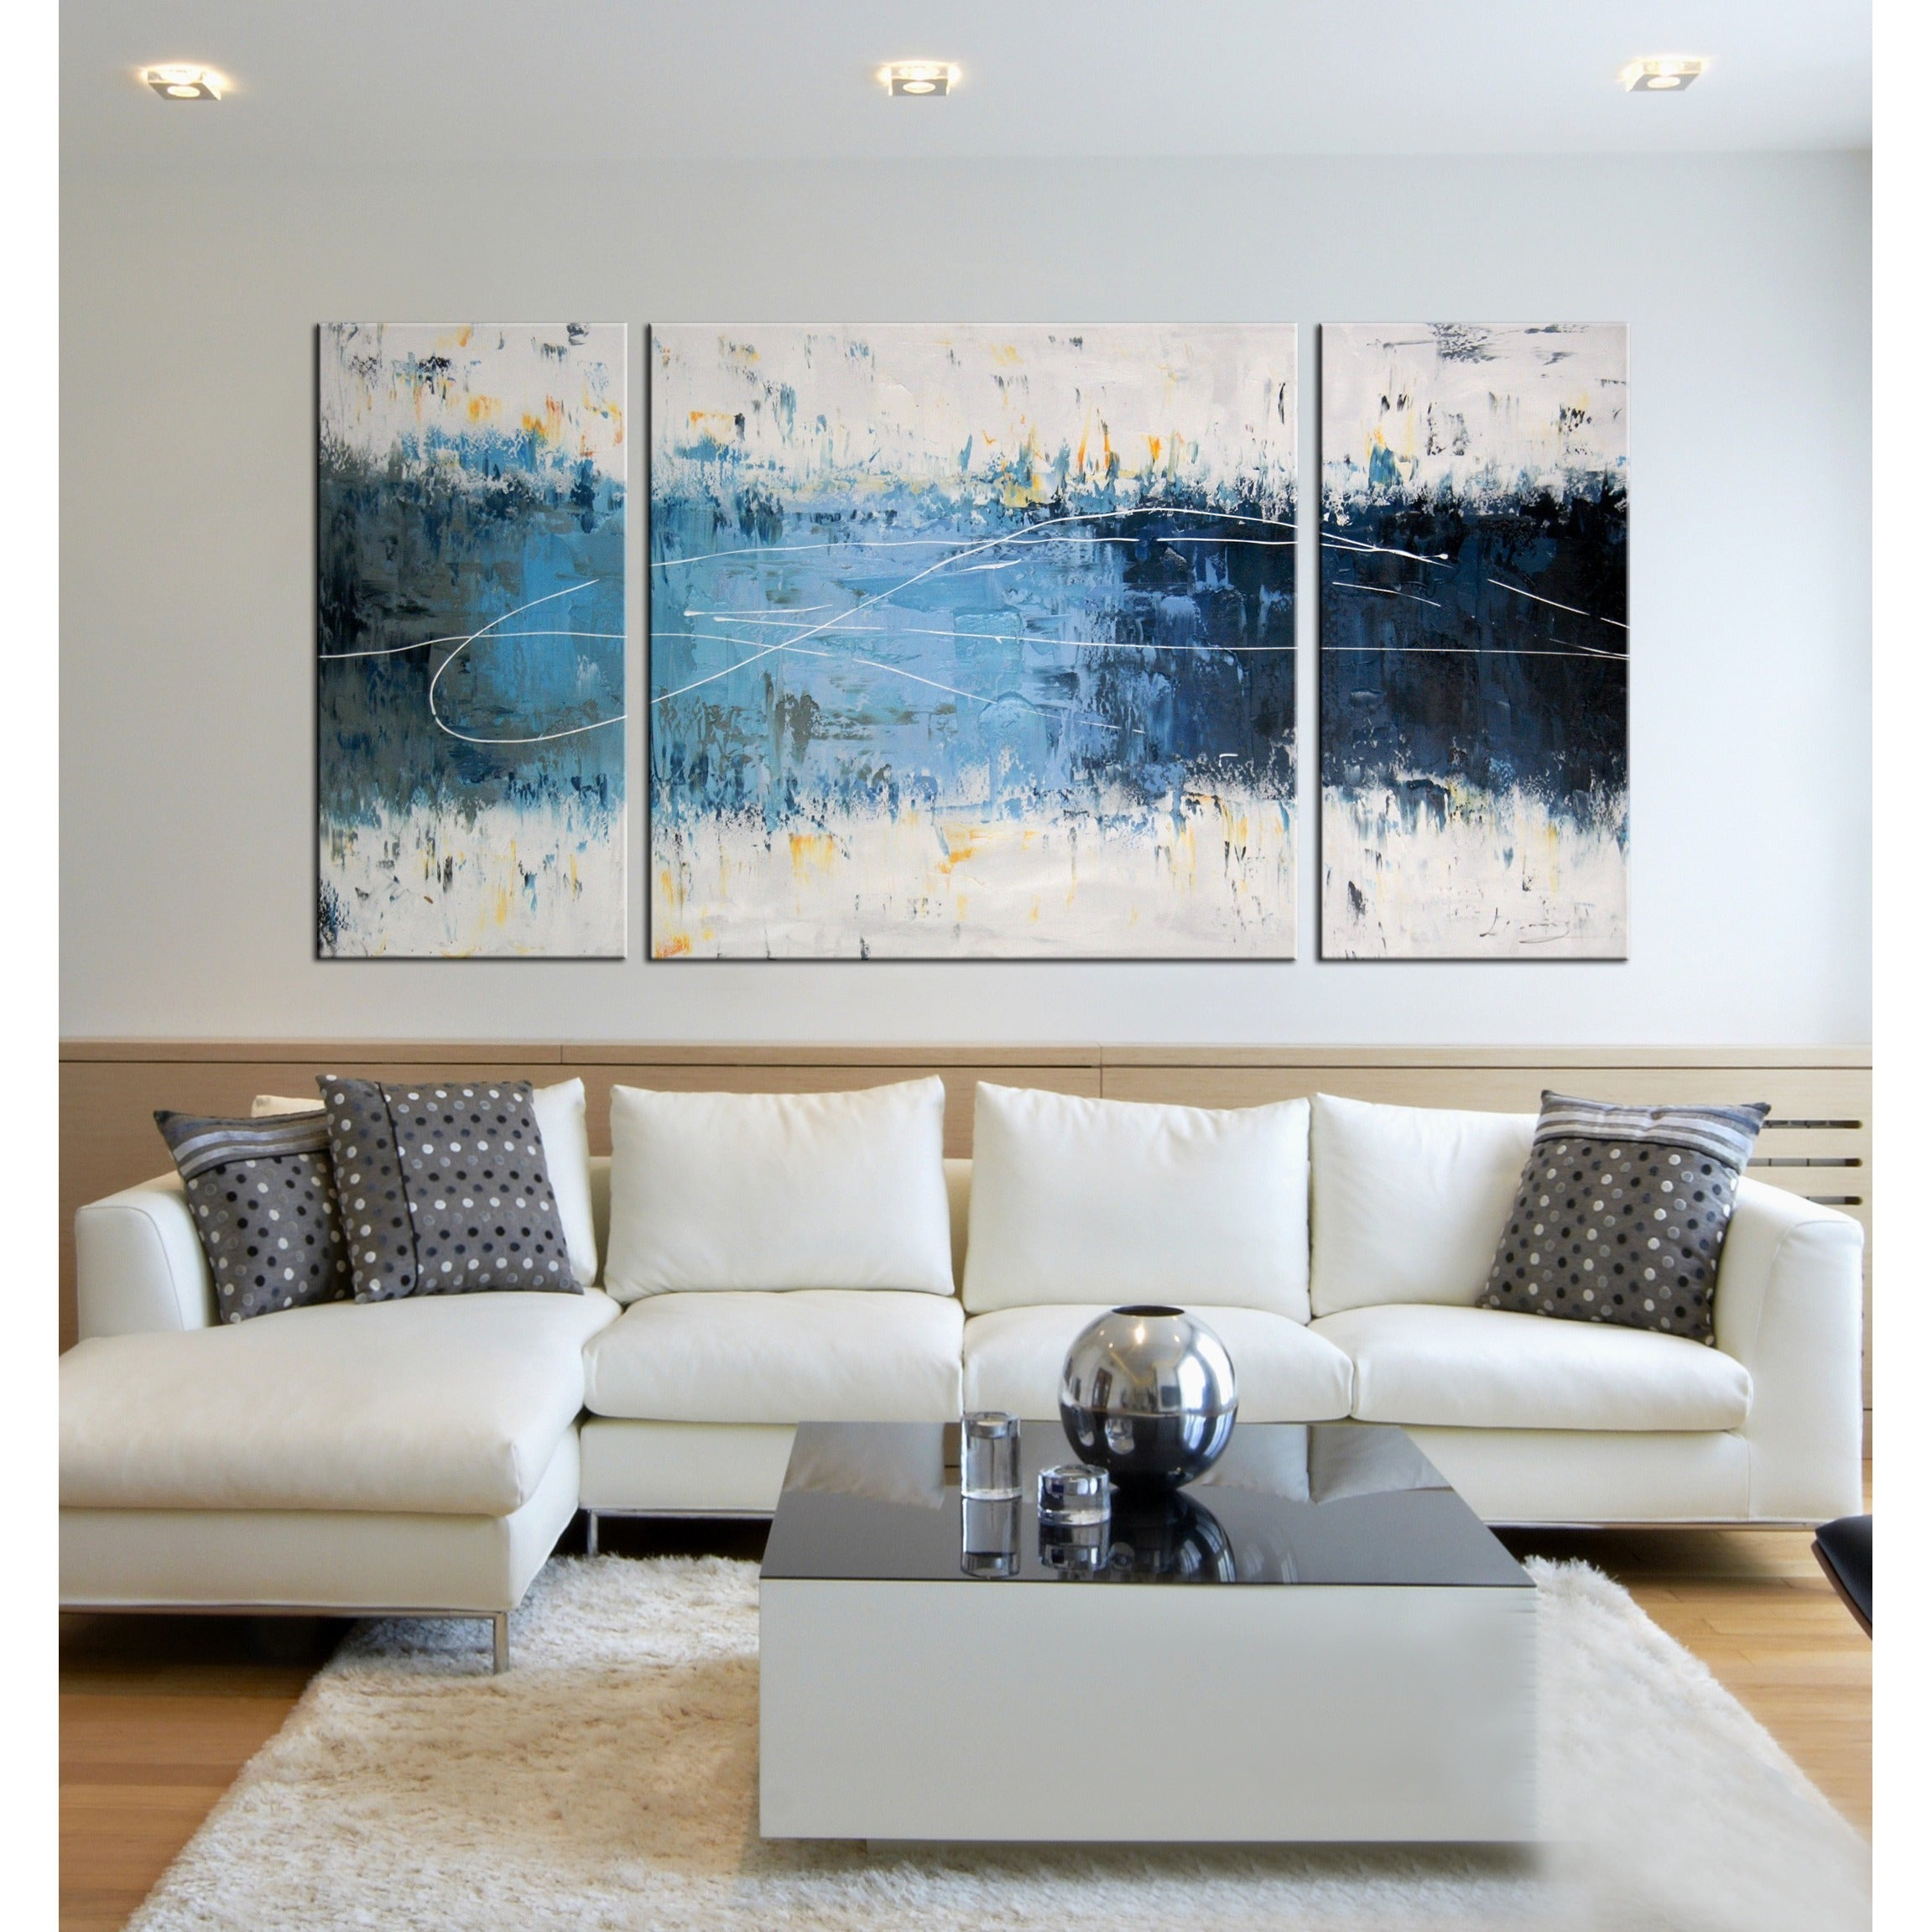 Latest Trend Paintings For Living Room Overstock.com